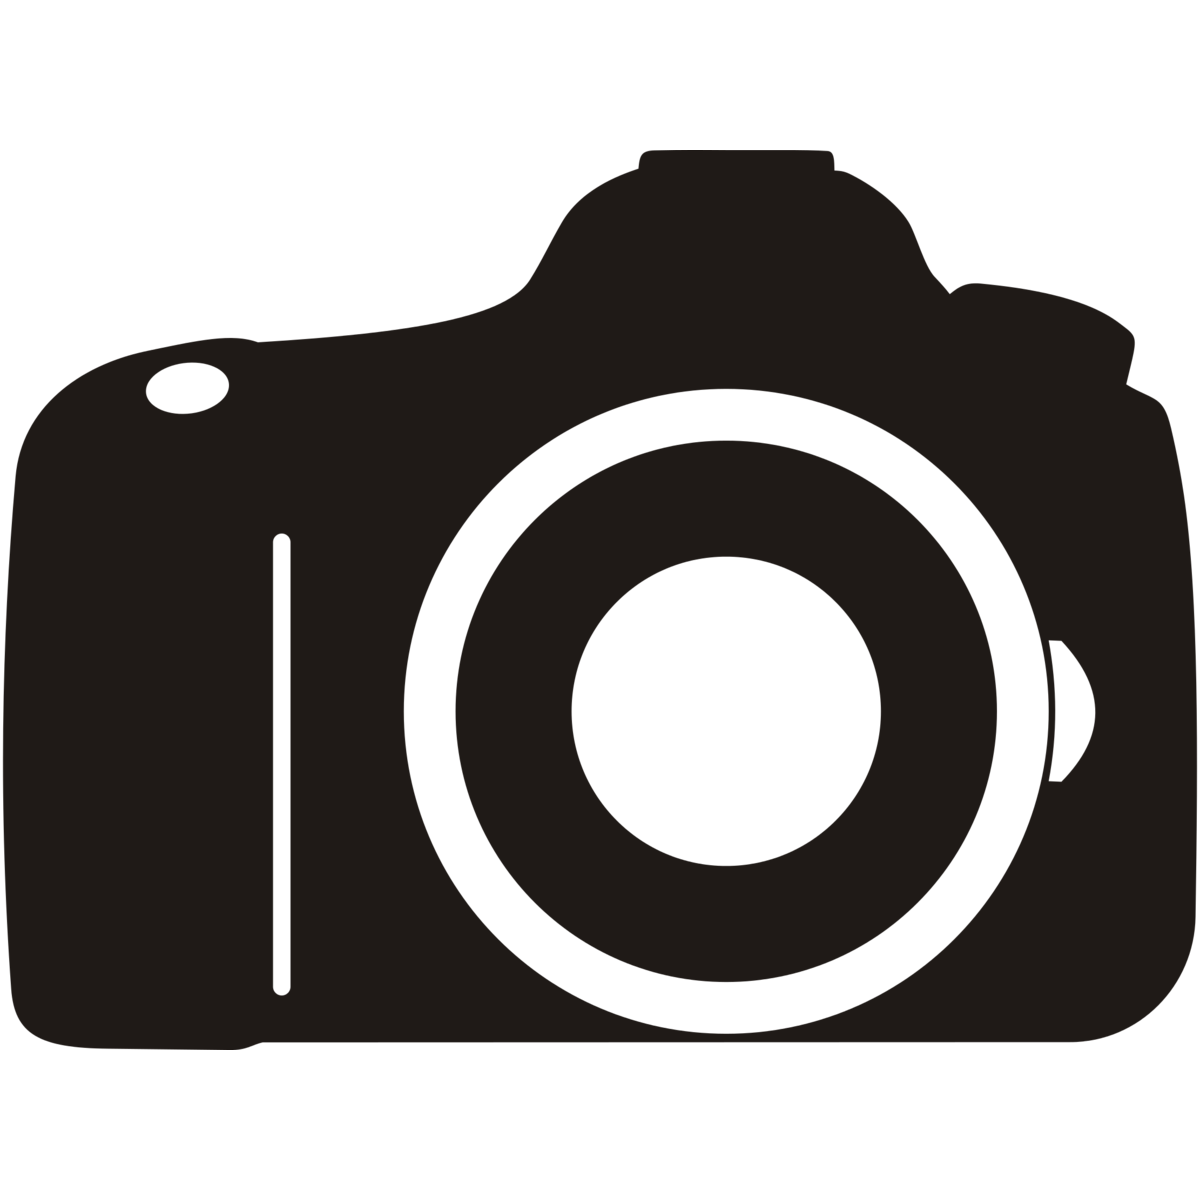 digital photography icons logo #7133